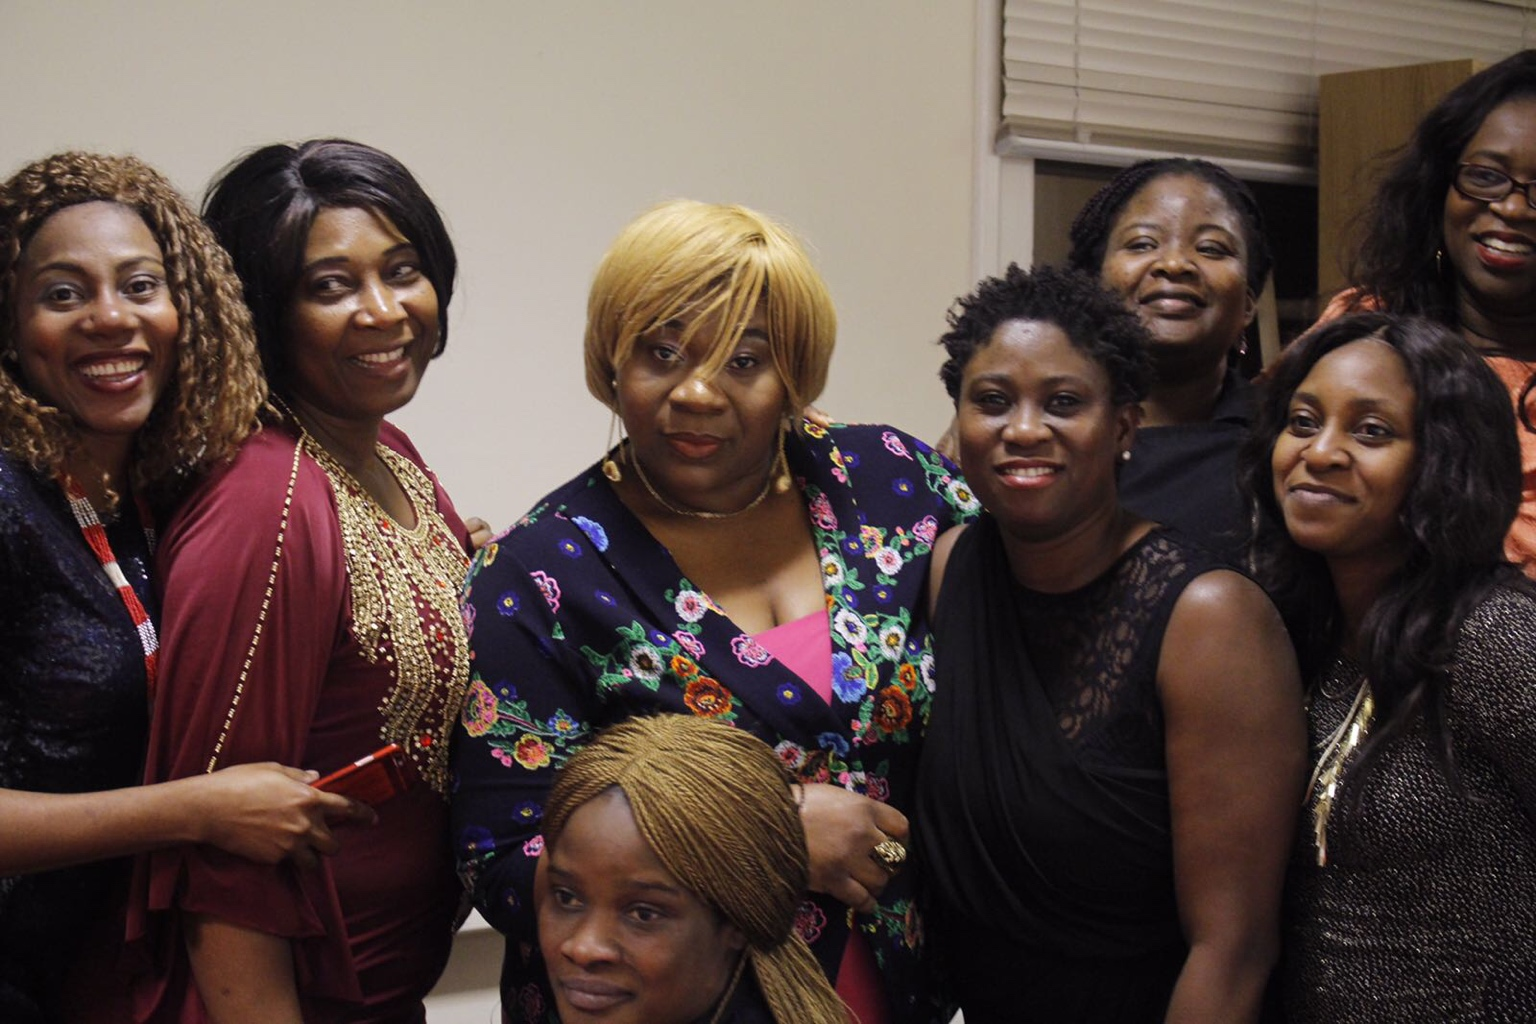 Just now with Deaconess @